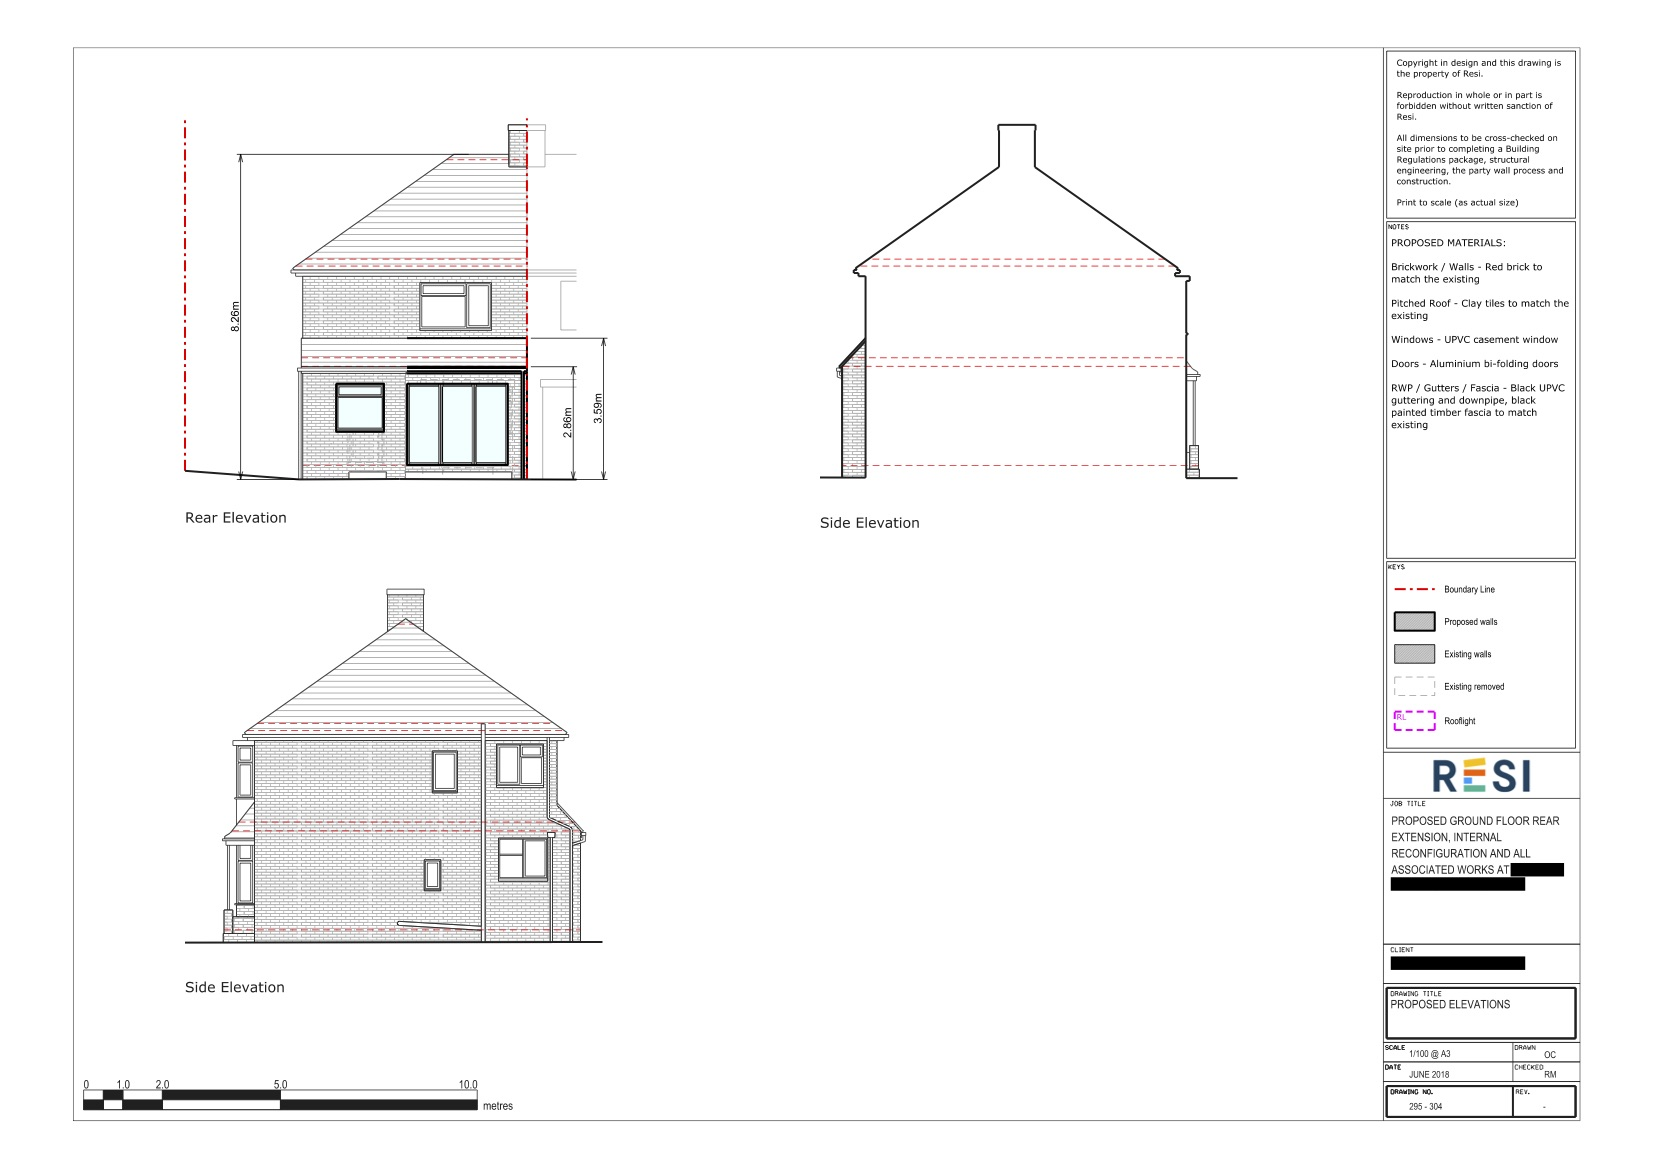 Gf architectural drawings 2 ground floor elevations